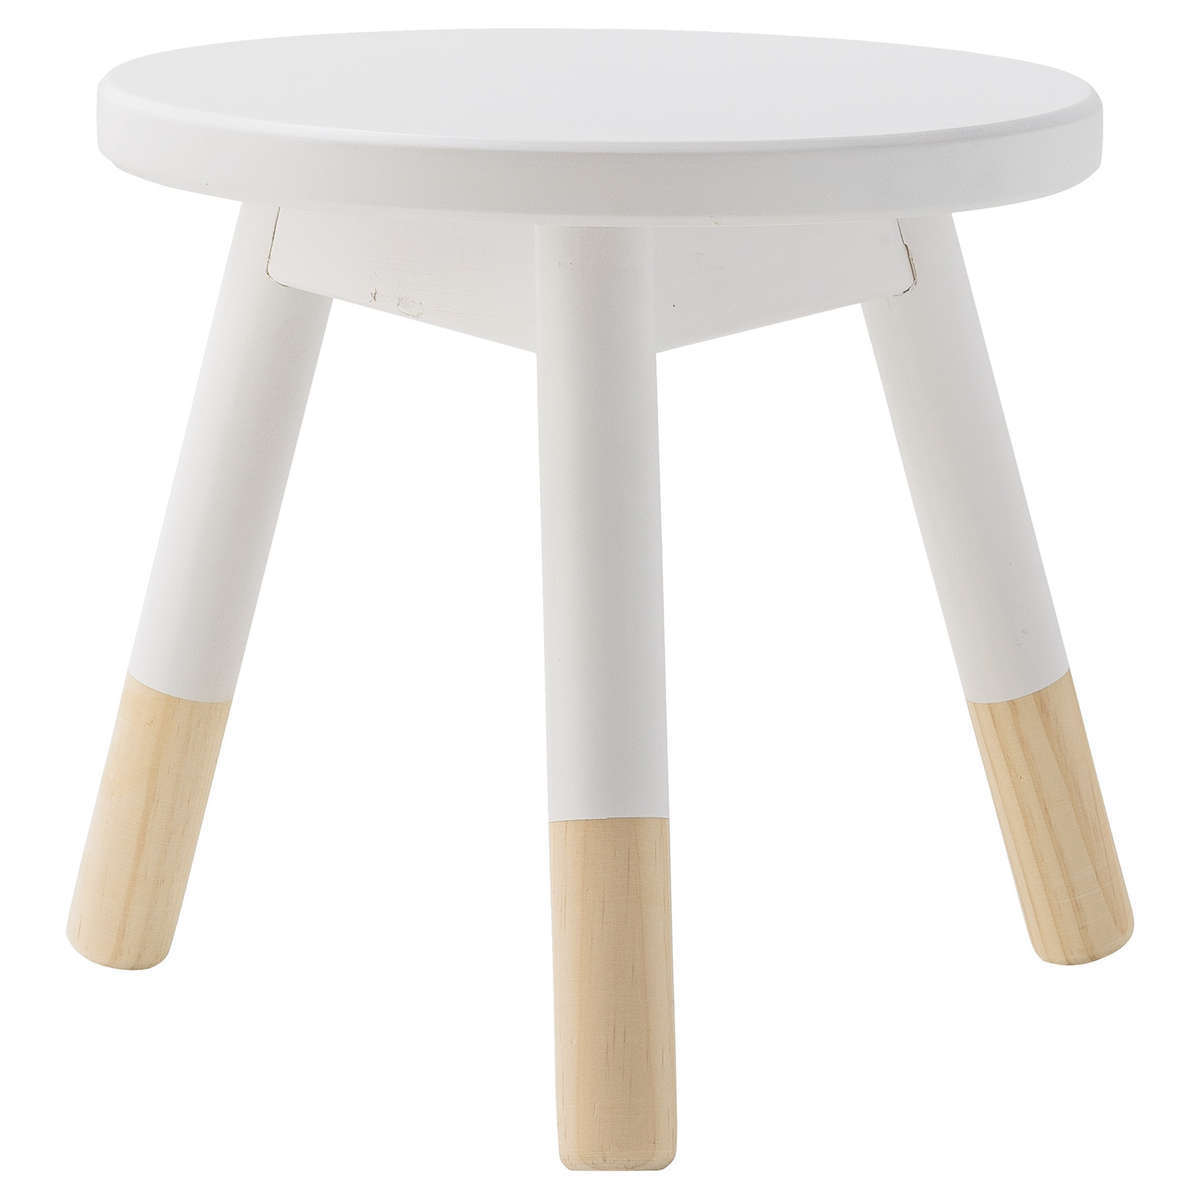 tabouret en bois blanc 50201167 achat vente table. Black Bedroom Furniture Sets. Home Design Ideas